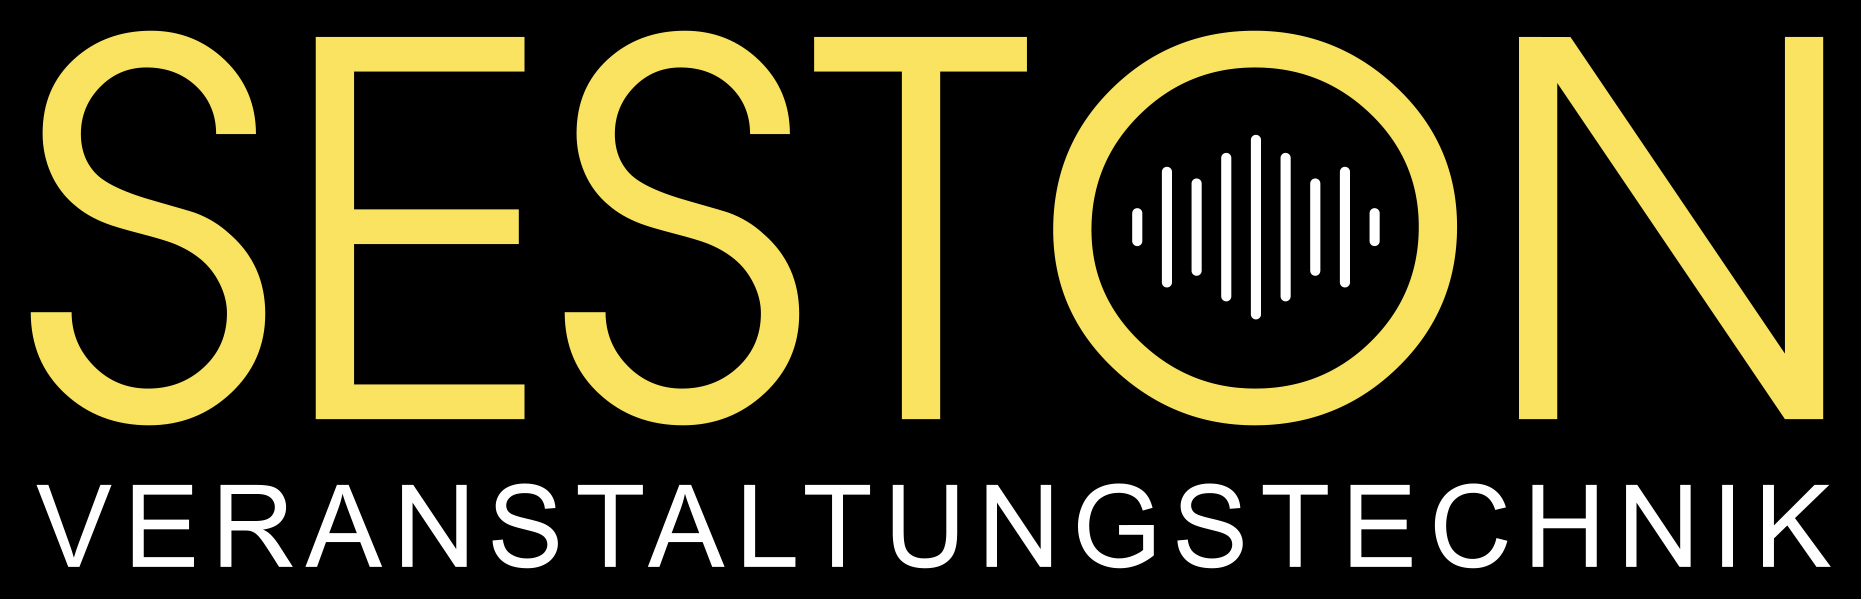 Seston Logo bild